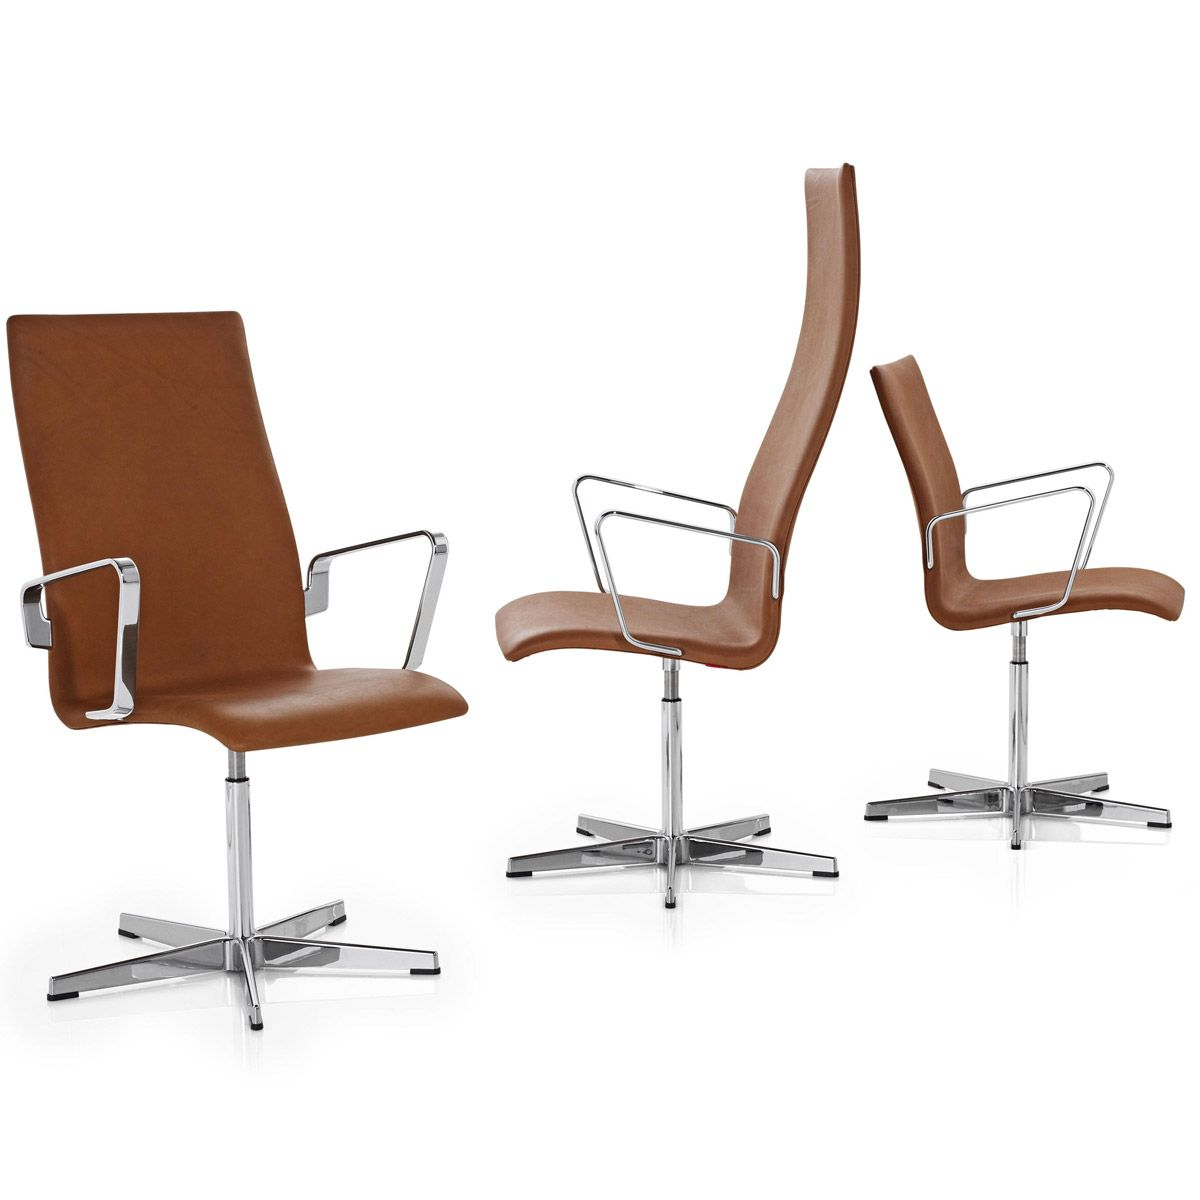 Oxford Sessel Fritz Hansen Oxford Sessel Im Möbel Online Shop Von Naharro